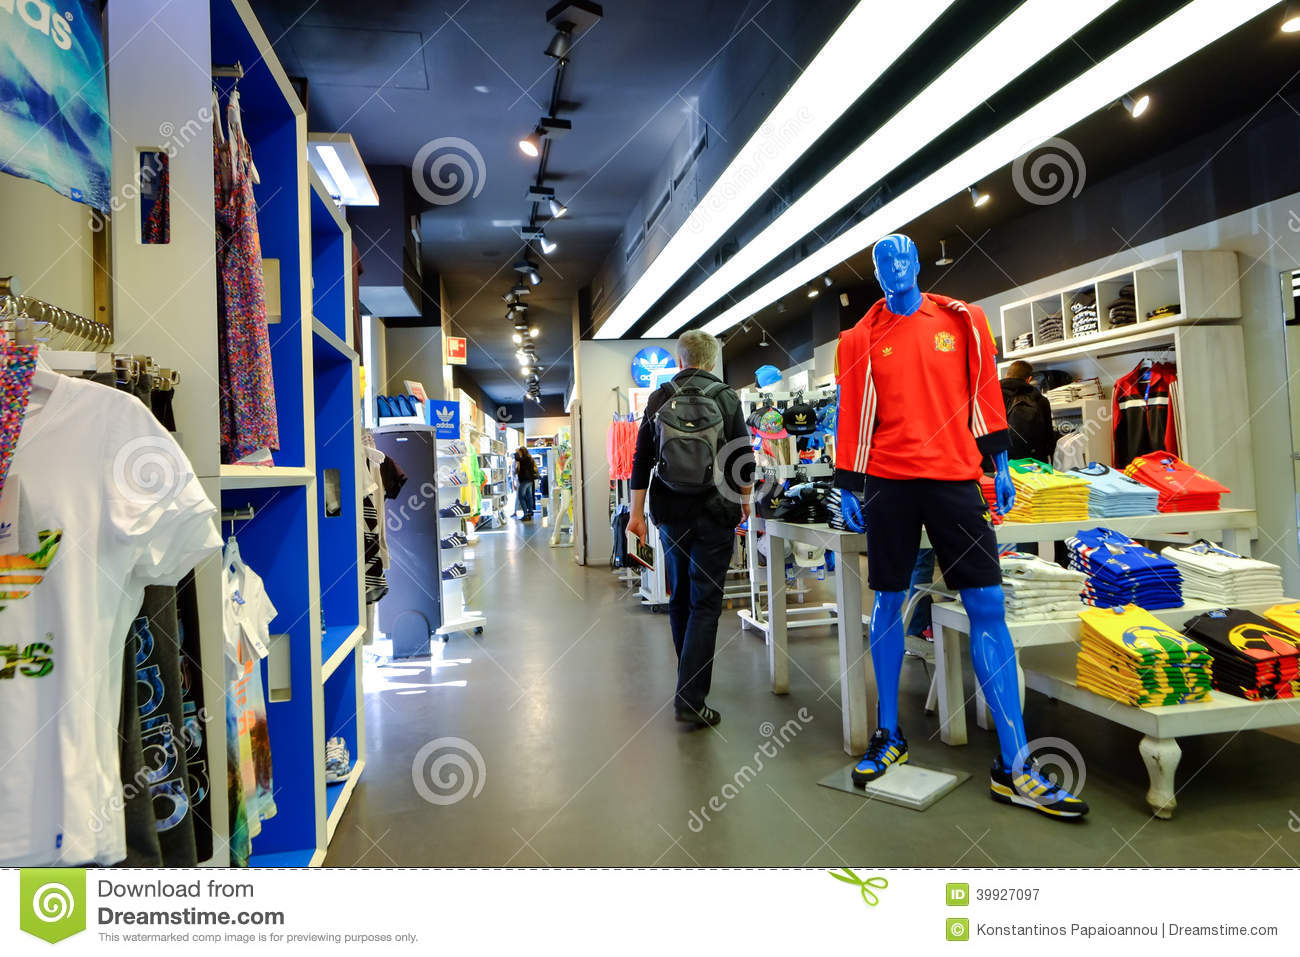 Sport clothing store. Clothing stores